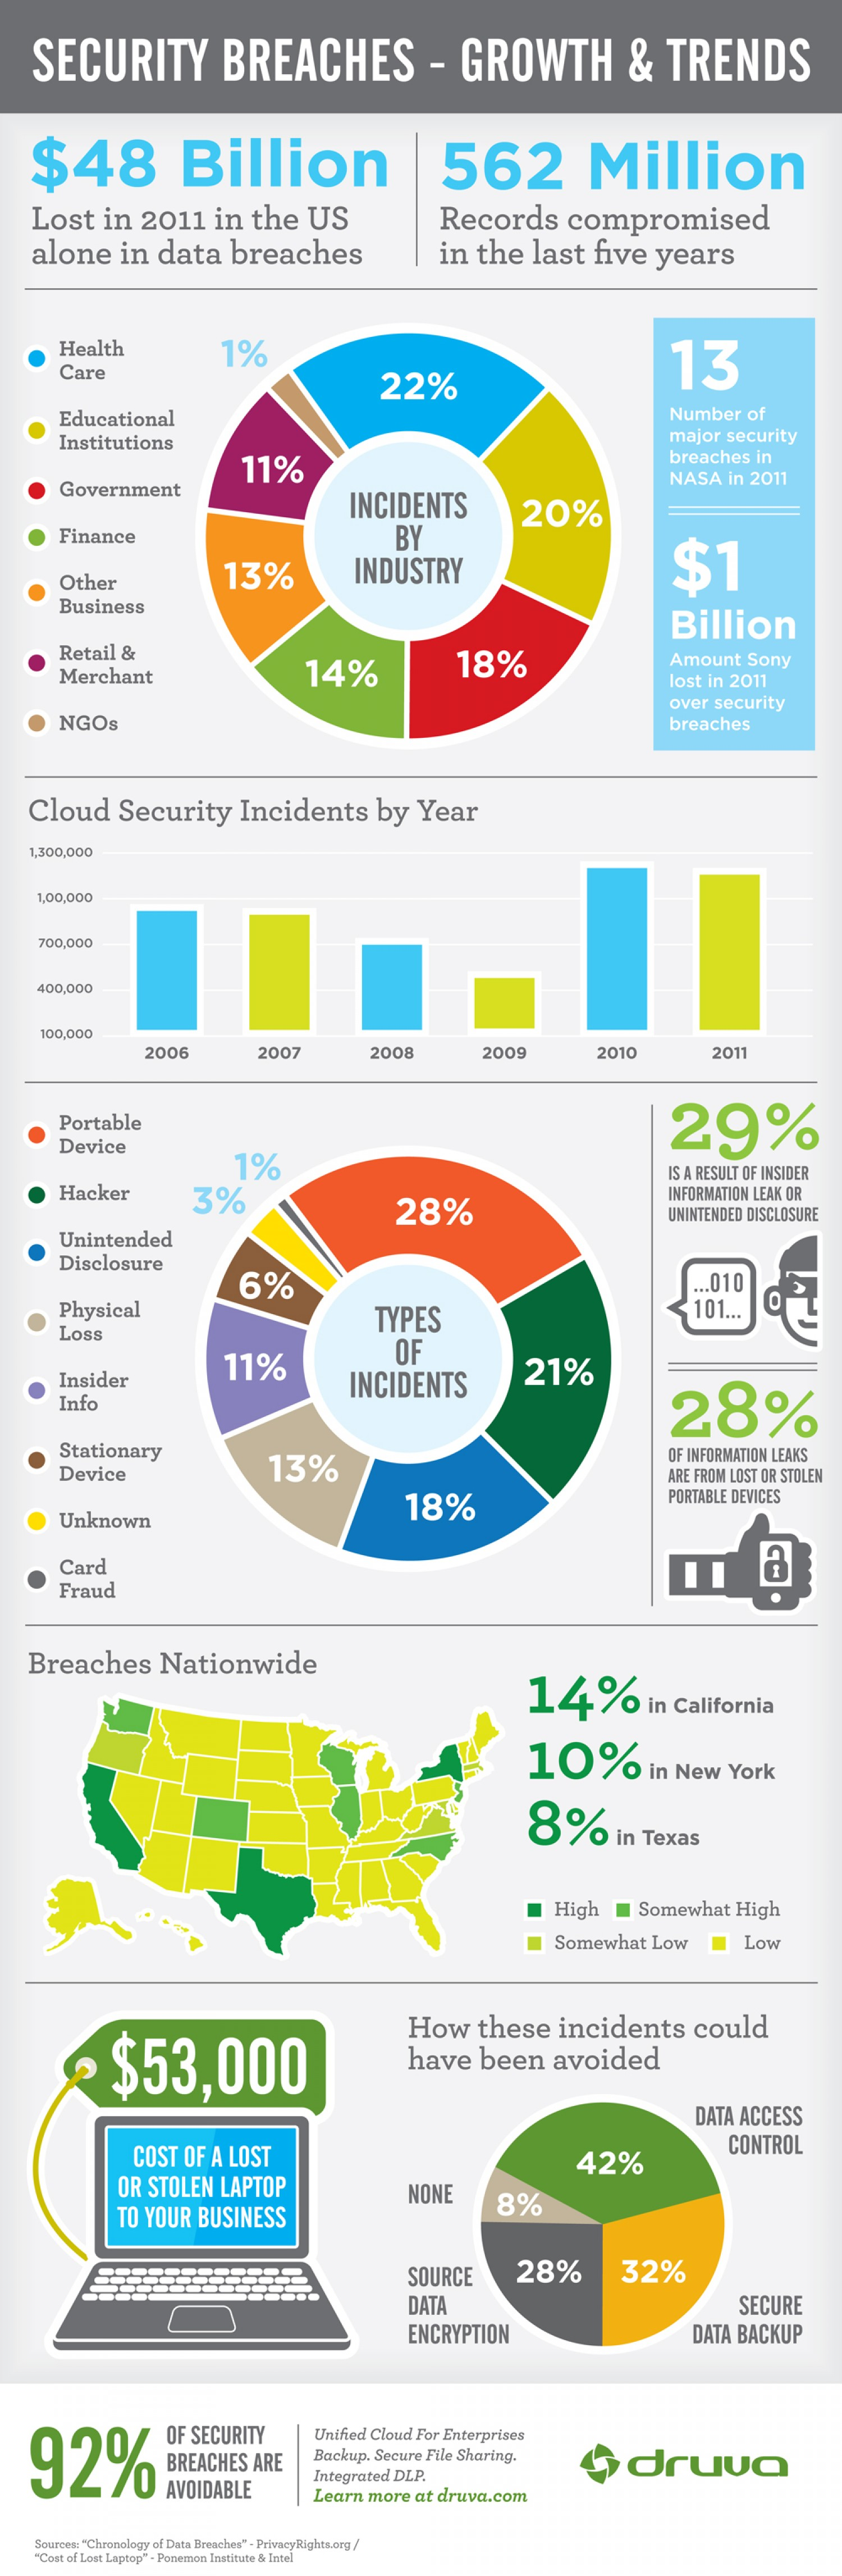 8. Security Breaches- Growth & Trends